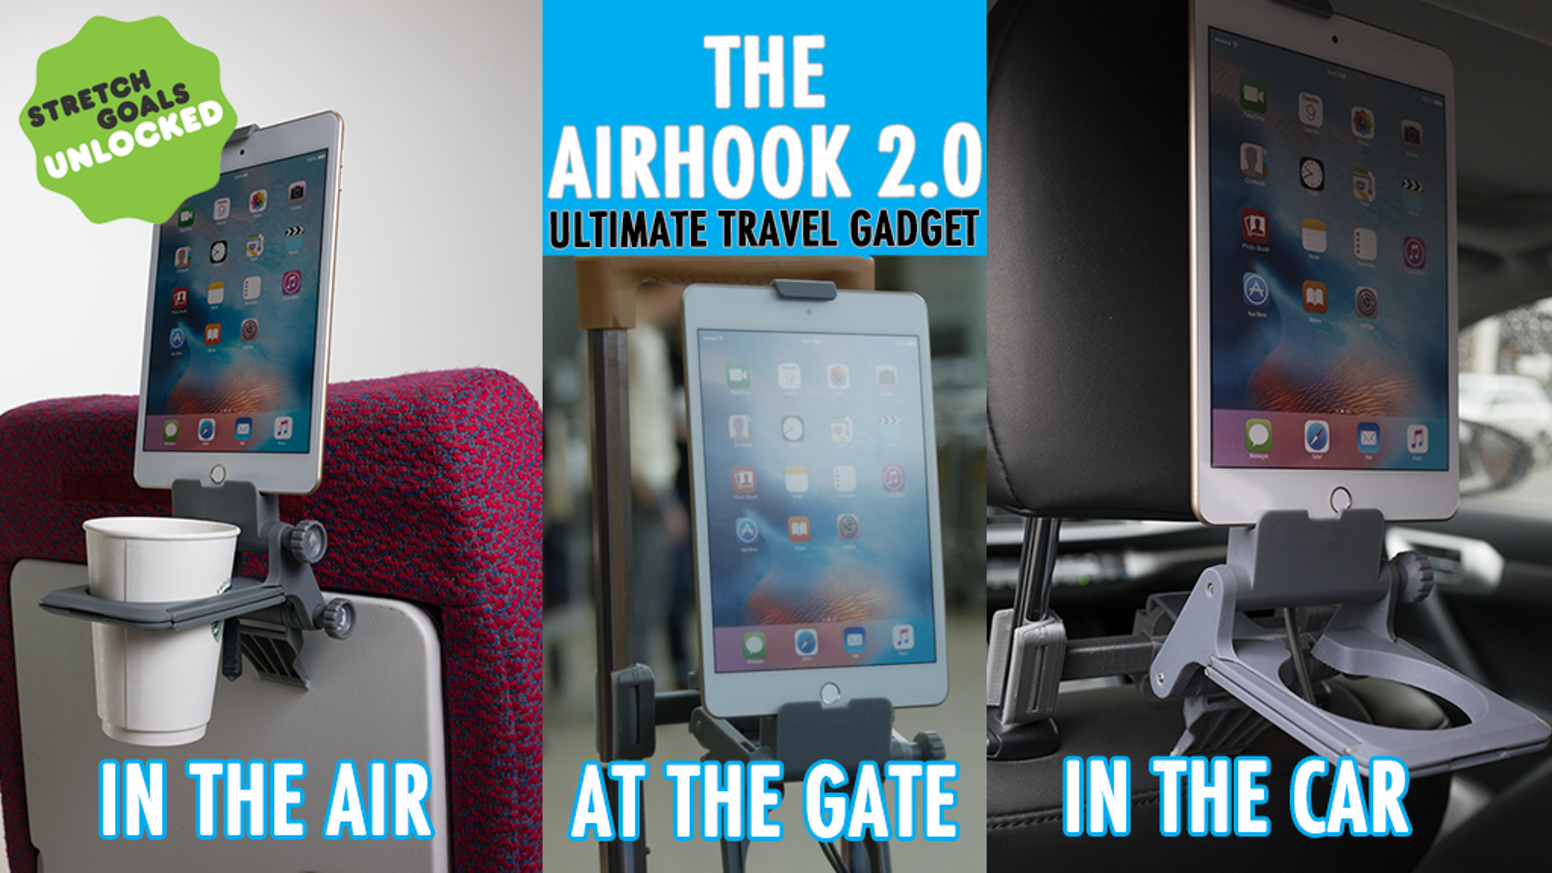 Support your tablet or cell phone + a can/cup/bottle HANDS-FREE on your inflight tray table, vehicle headrest, and luggage handlebars!